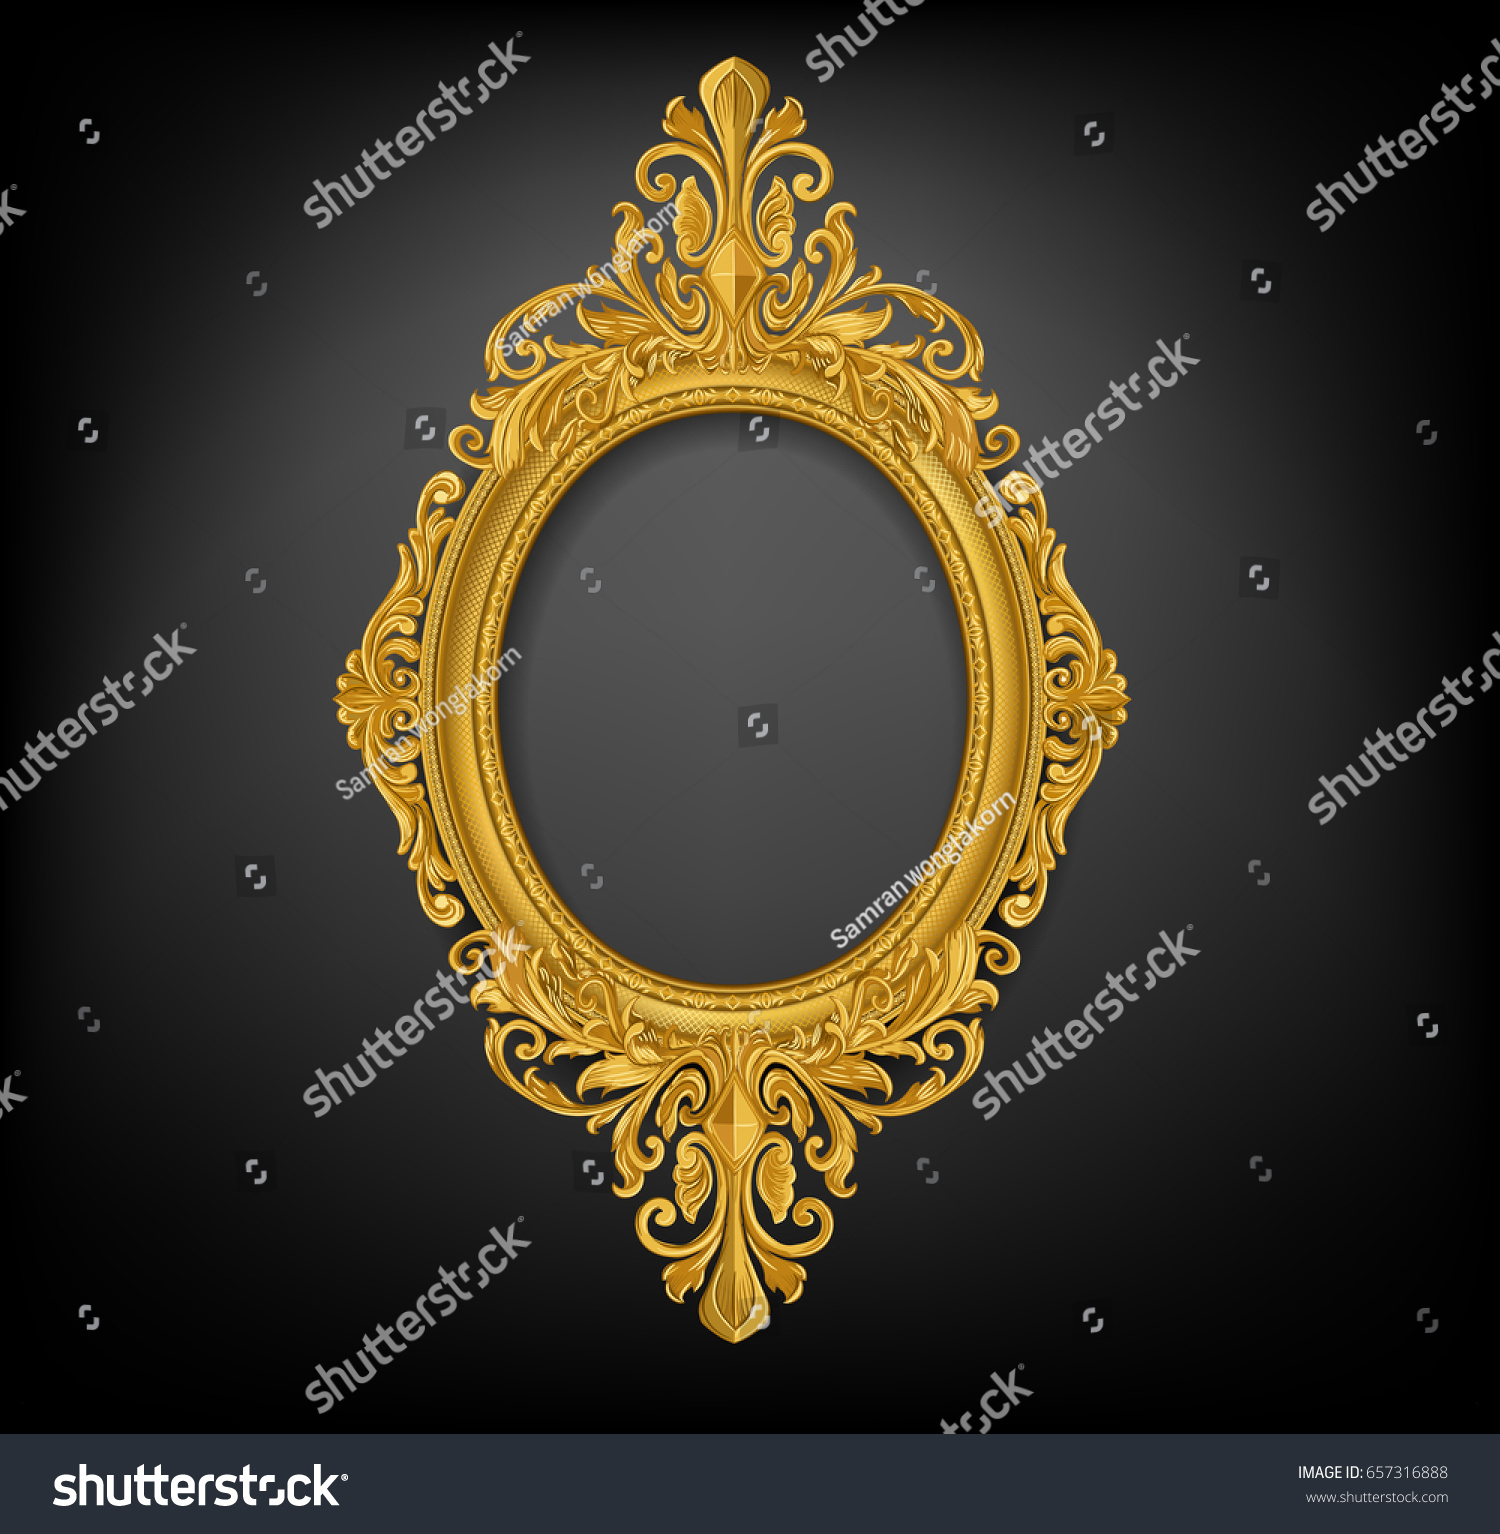 frames vintage vector gold text clip art free place with on download dark backgrounds for